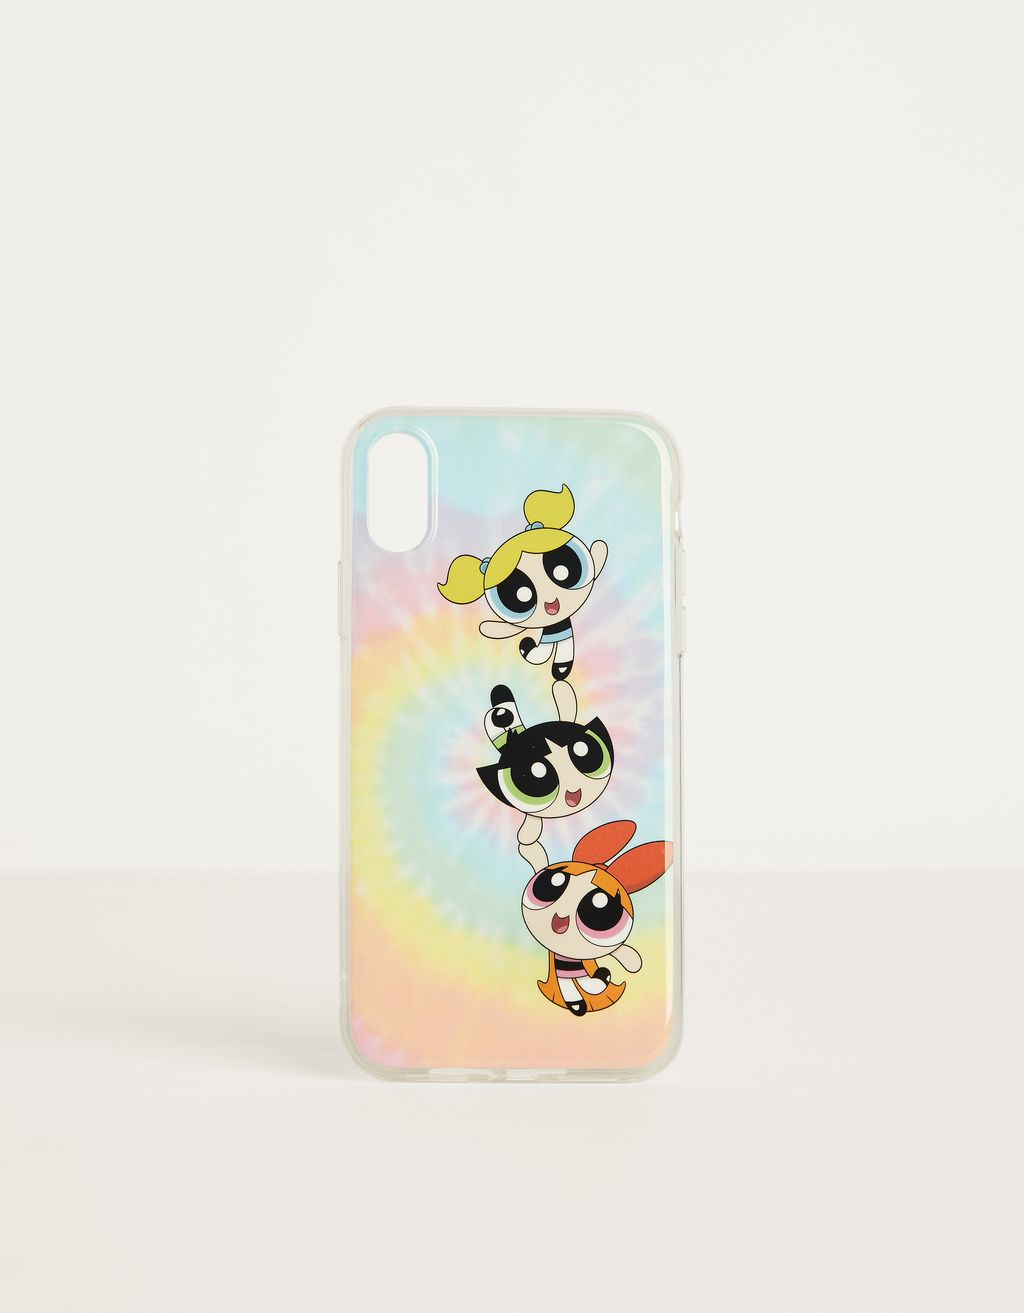 The Powerpuff Girls x Bershka iPhone XR case